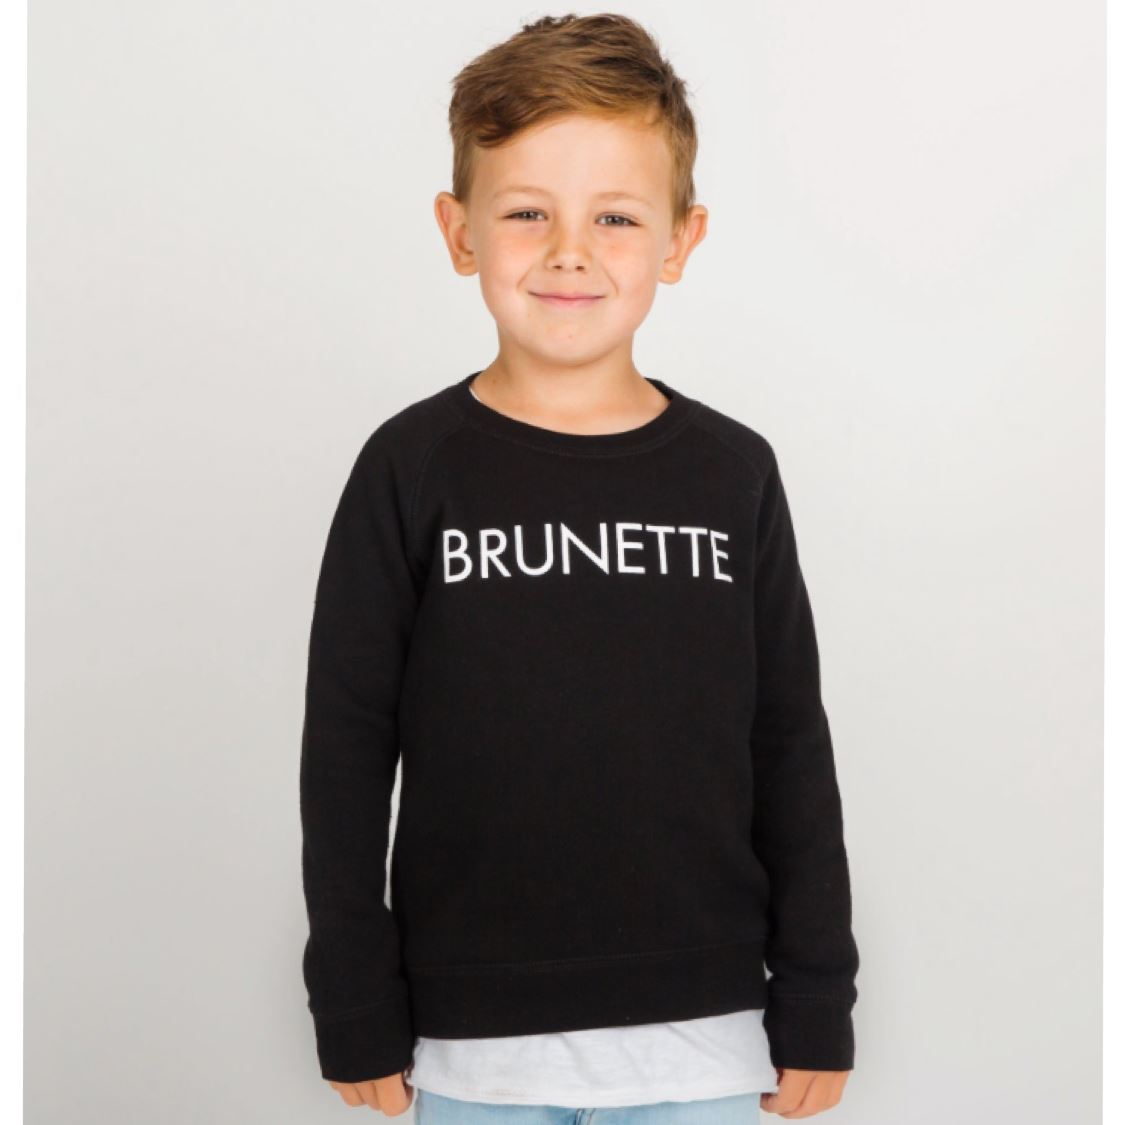 Brunette the Label - Little Babes BRUNETTE Black Crewneck Sweatshirt Sweatshirt Brunette the Label